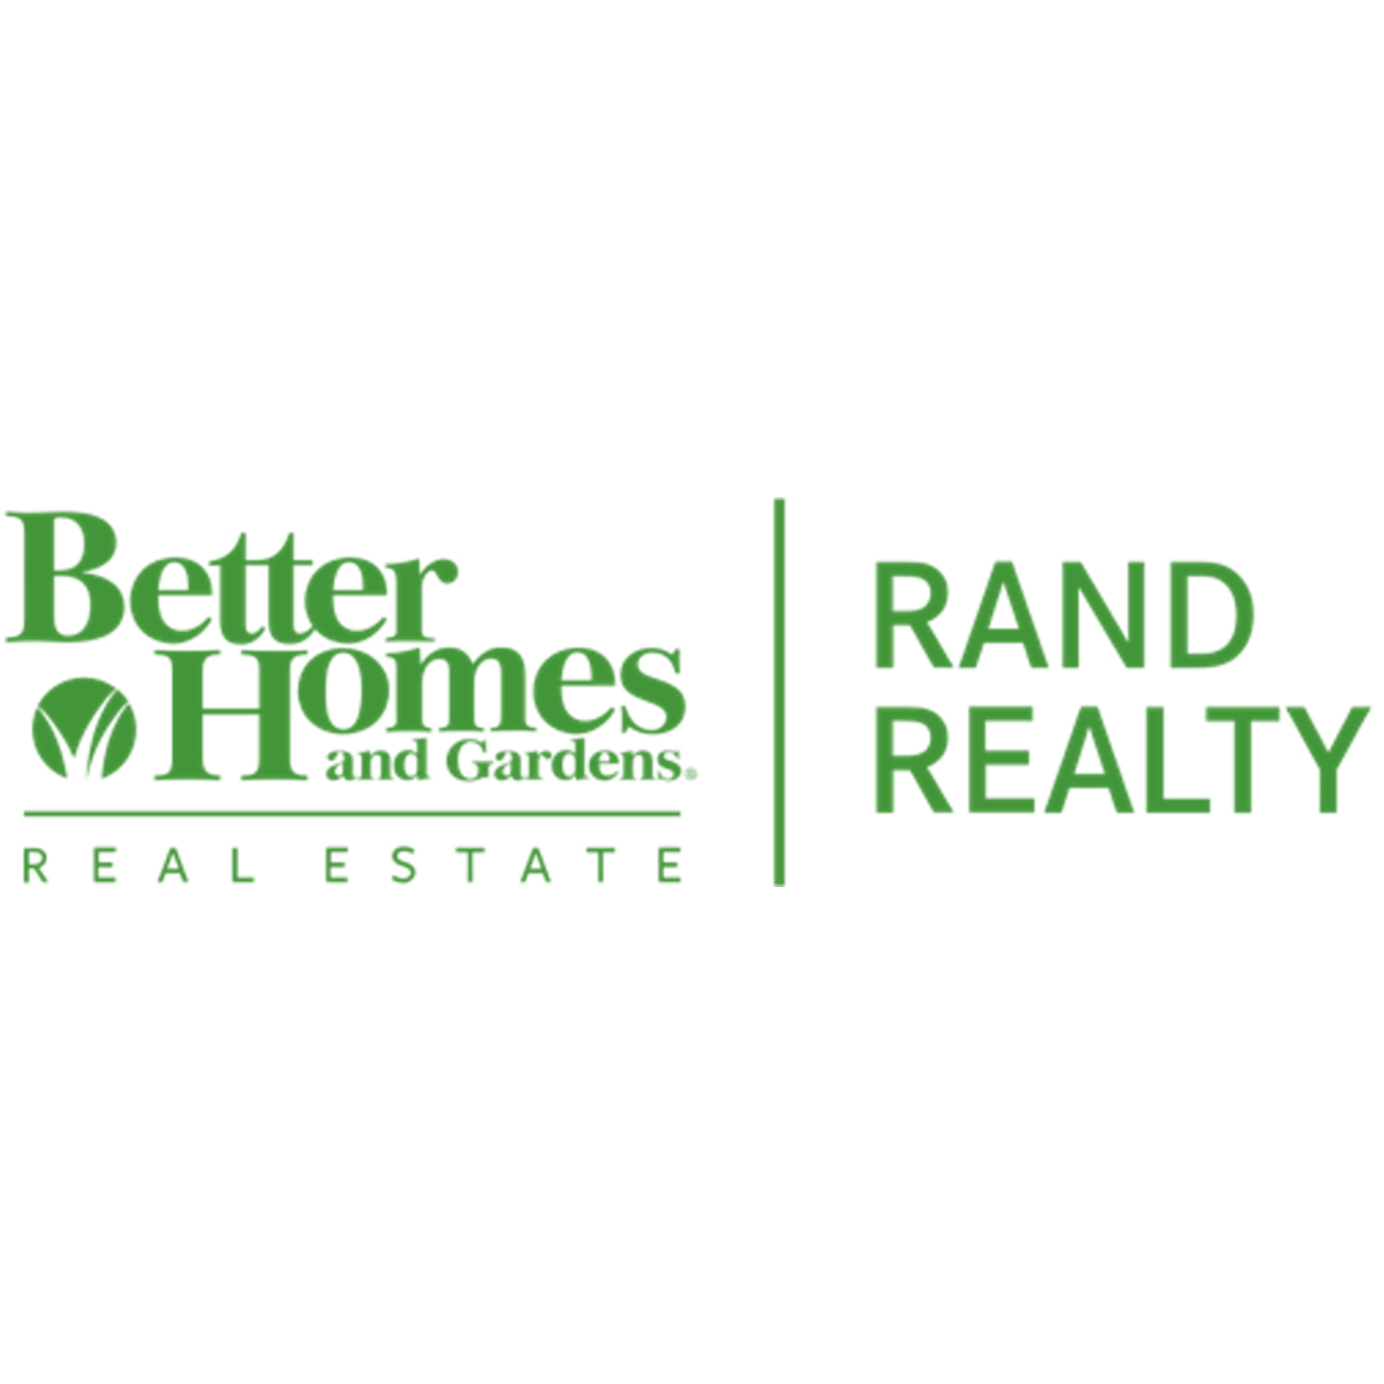 Karla Lessig | Better Homes and Gardens Rand Realty